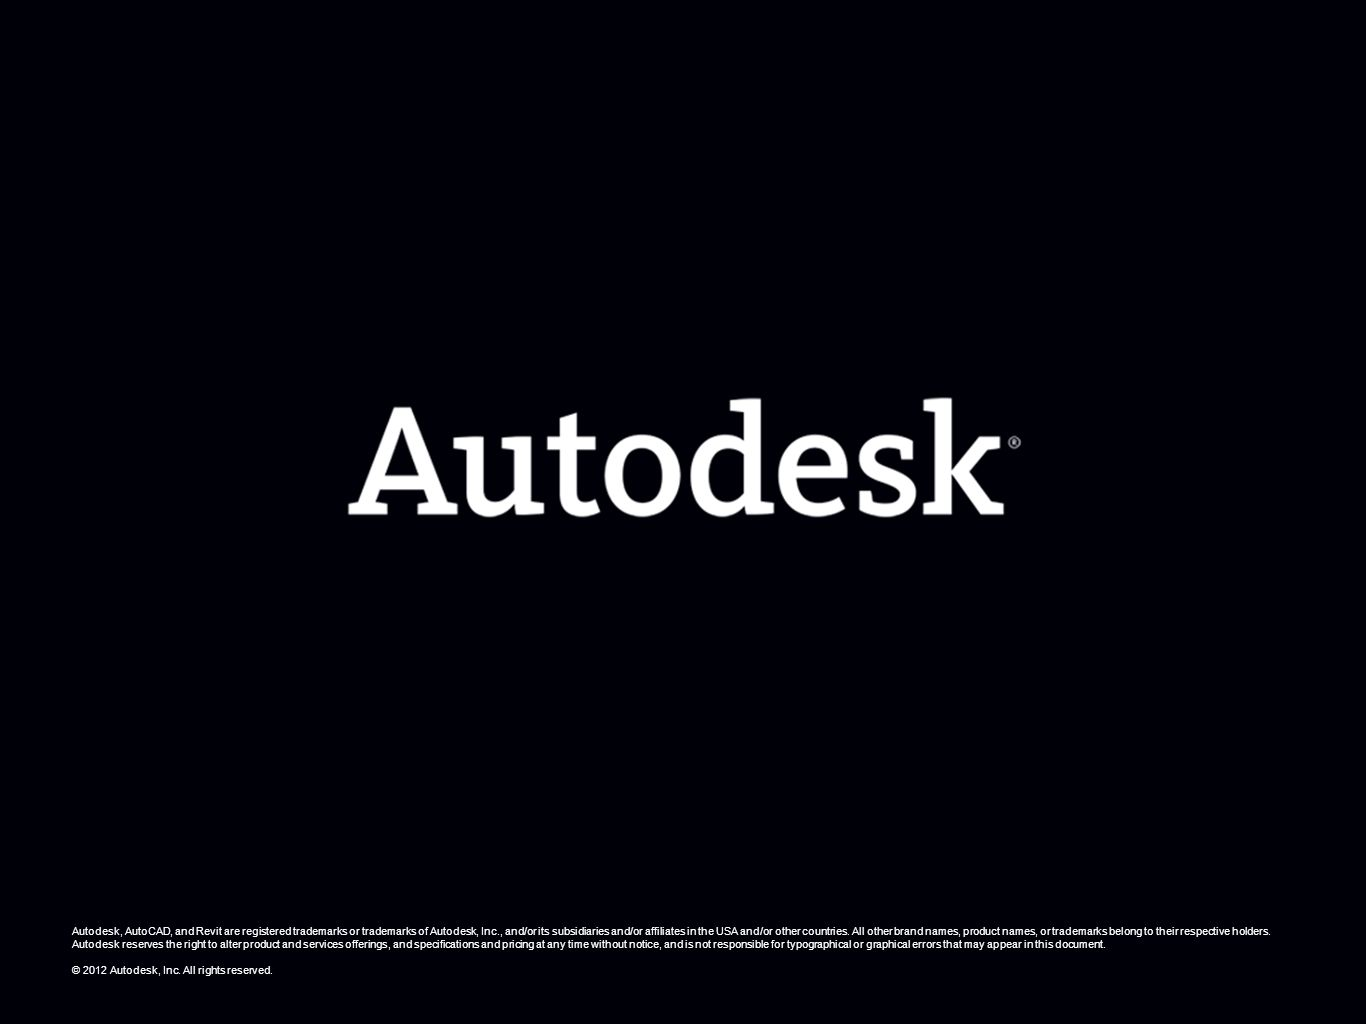 Autodesk, AutoCAD, and Revit are registered trademarks or trademarks of Autodesk, Inc., and/or its subsidiaries and/or affiliates in the USA and/or other countries. All other brand names, product names, or trademarks belong to their respective holders. Autodesk reserves the right to alter product and services offerings, and specifications and pricing at any time without notice, and is not responsible for typographical or graphical errors that may appear in this document.